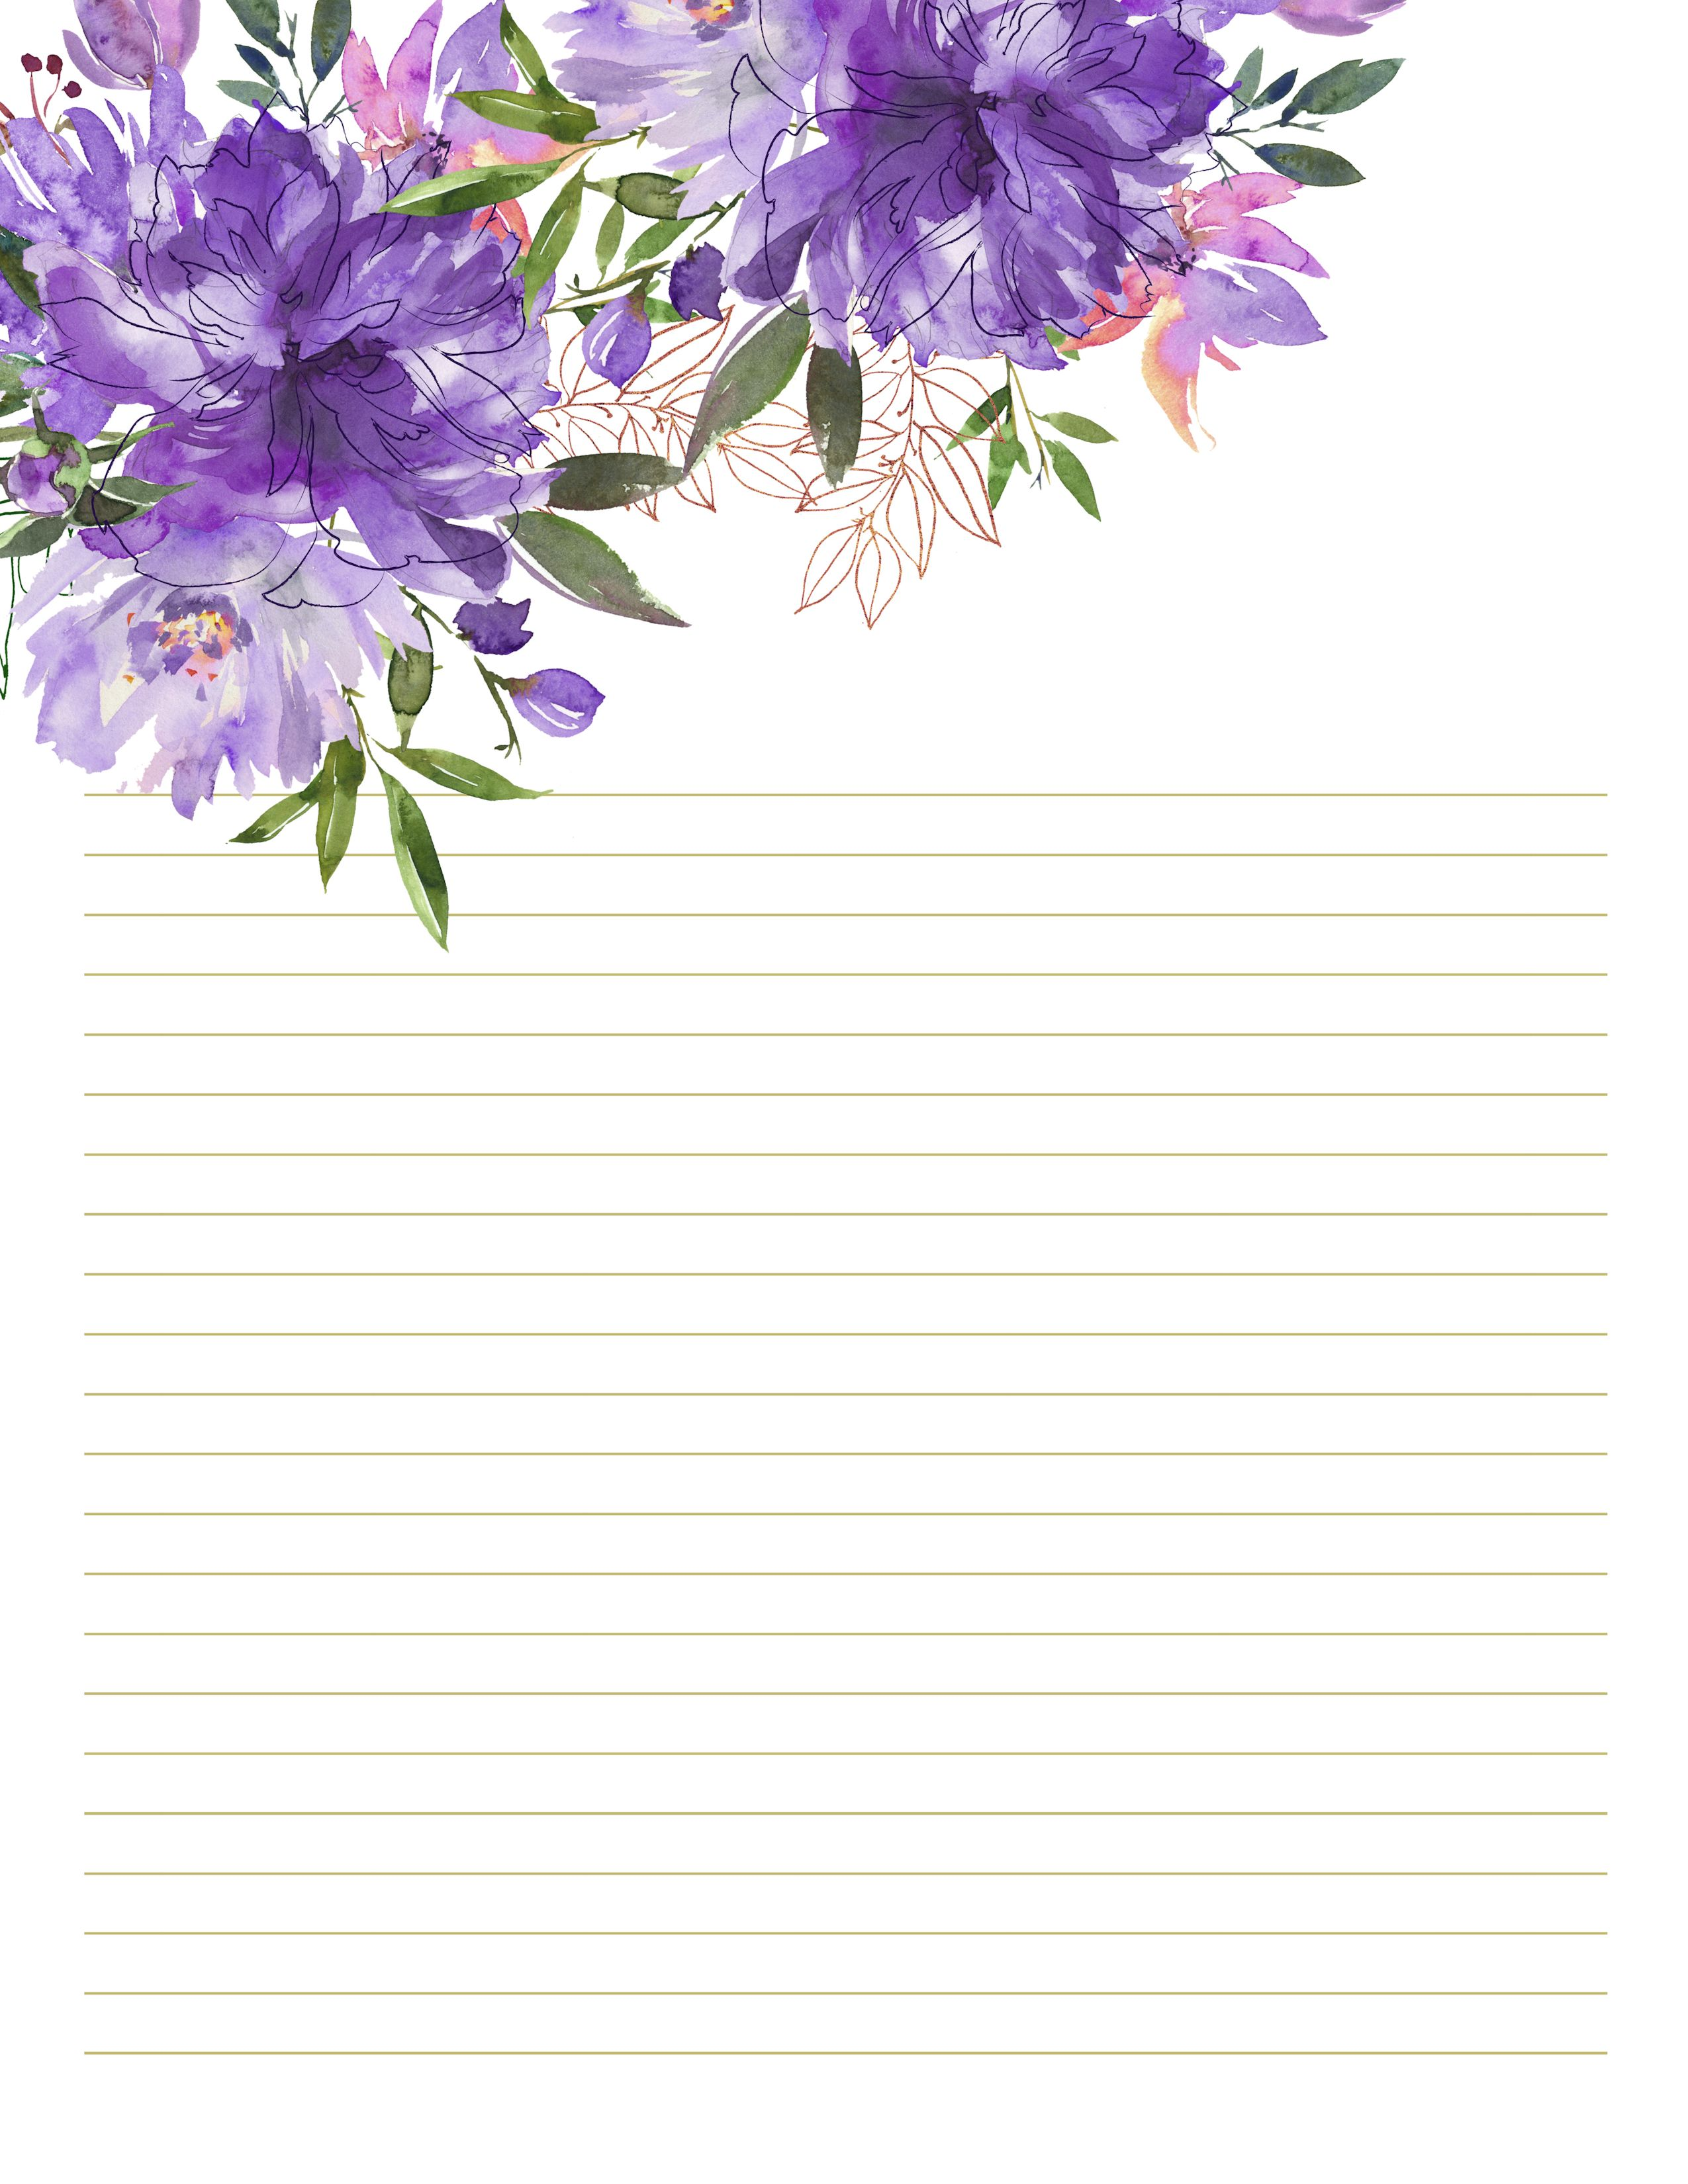 Personalized Floral Stationery Peony Flowers Stationary Pretty Writing Paper